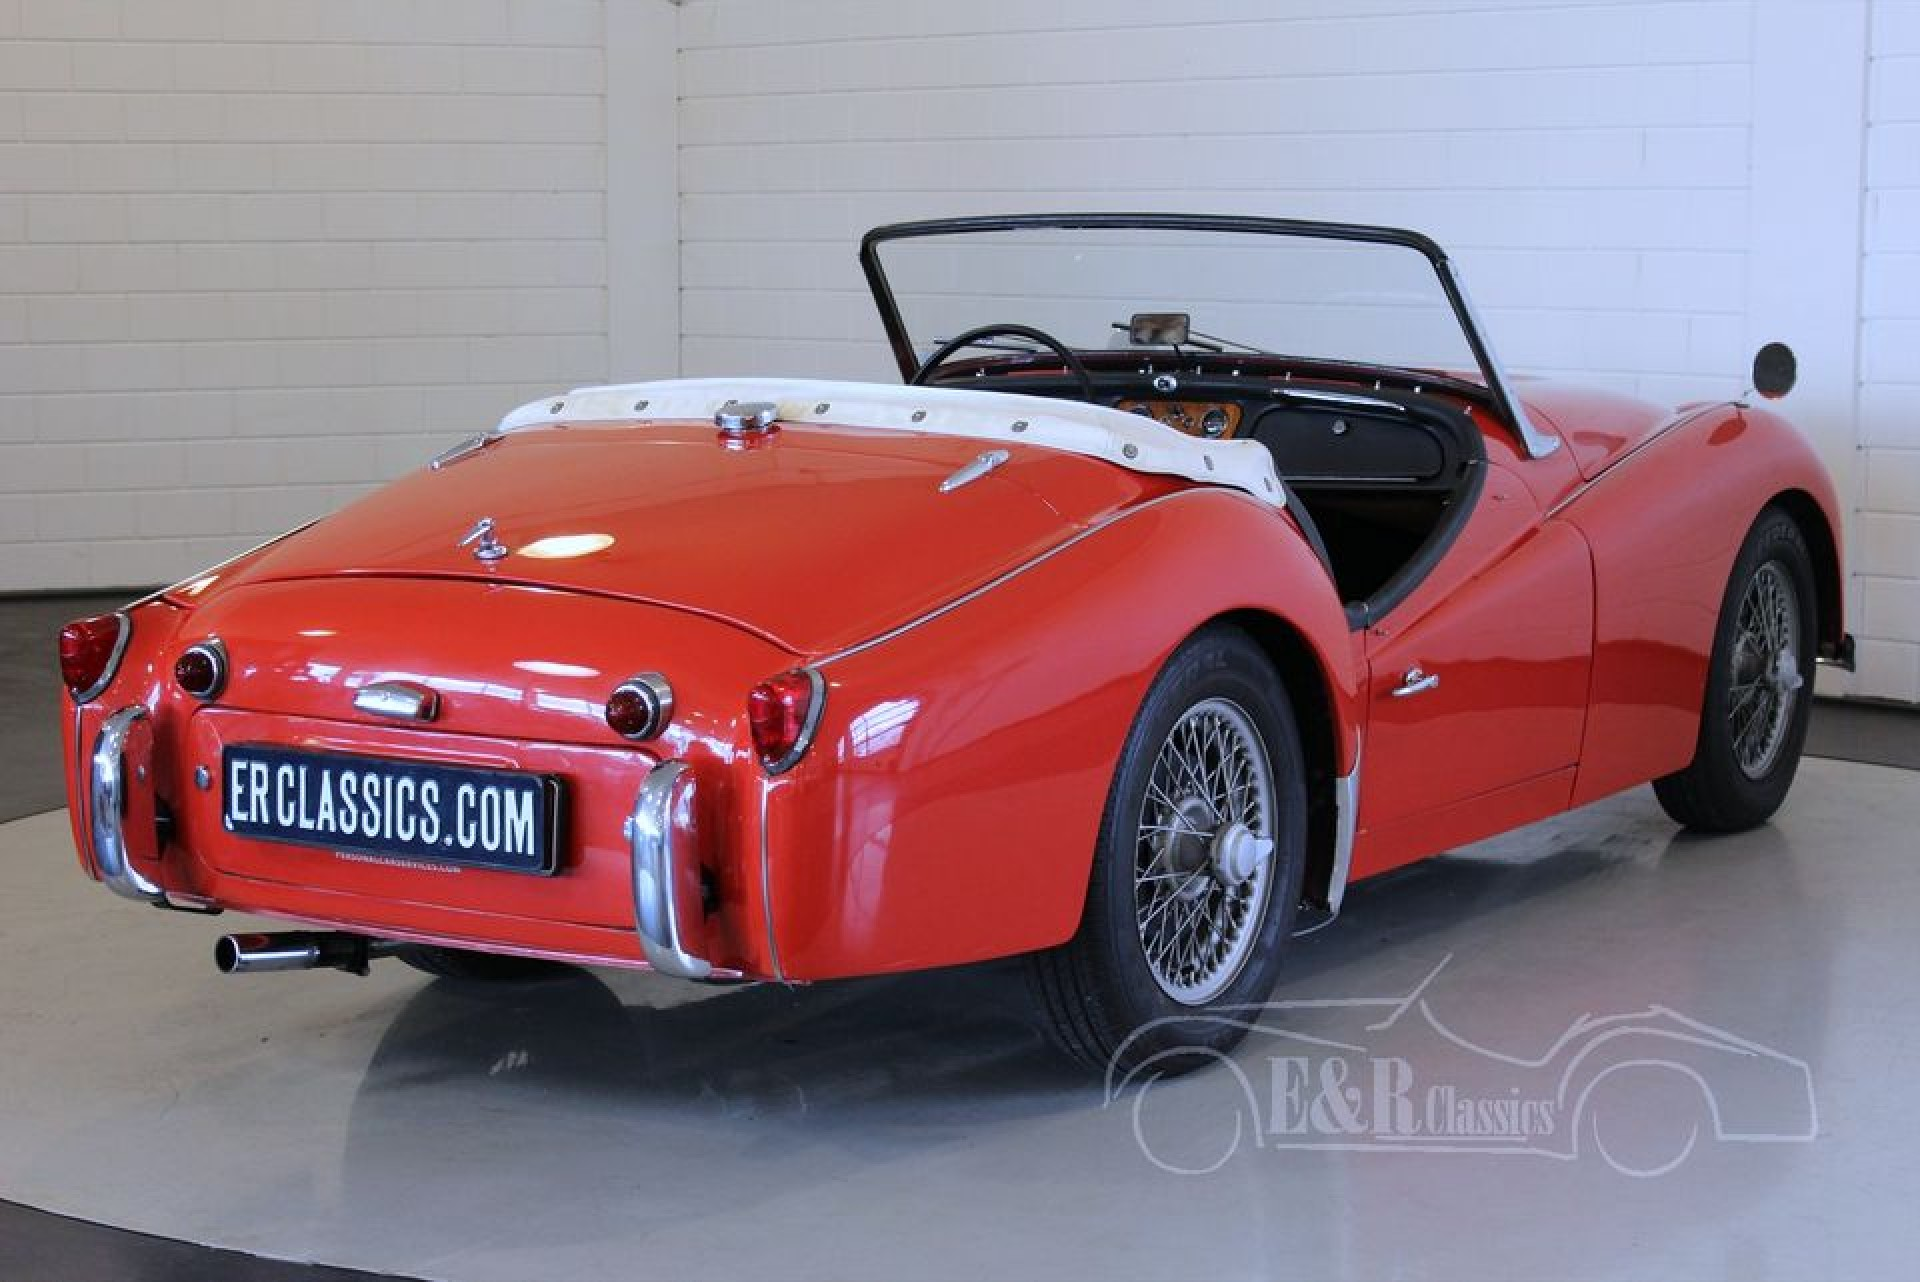 triumph tr3 1957 for sale at erclassics. Black Bedroom Furniture Sets. Home Design Ideas